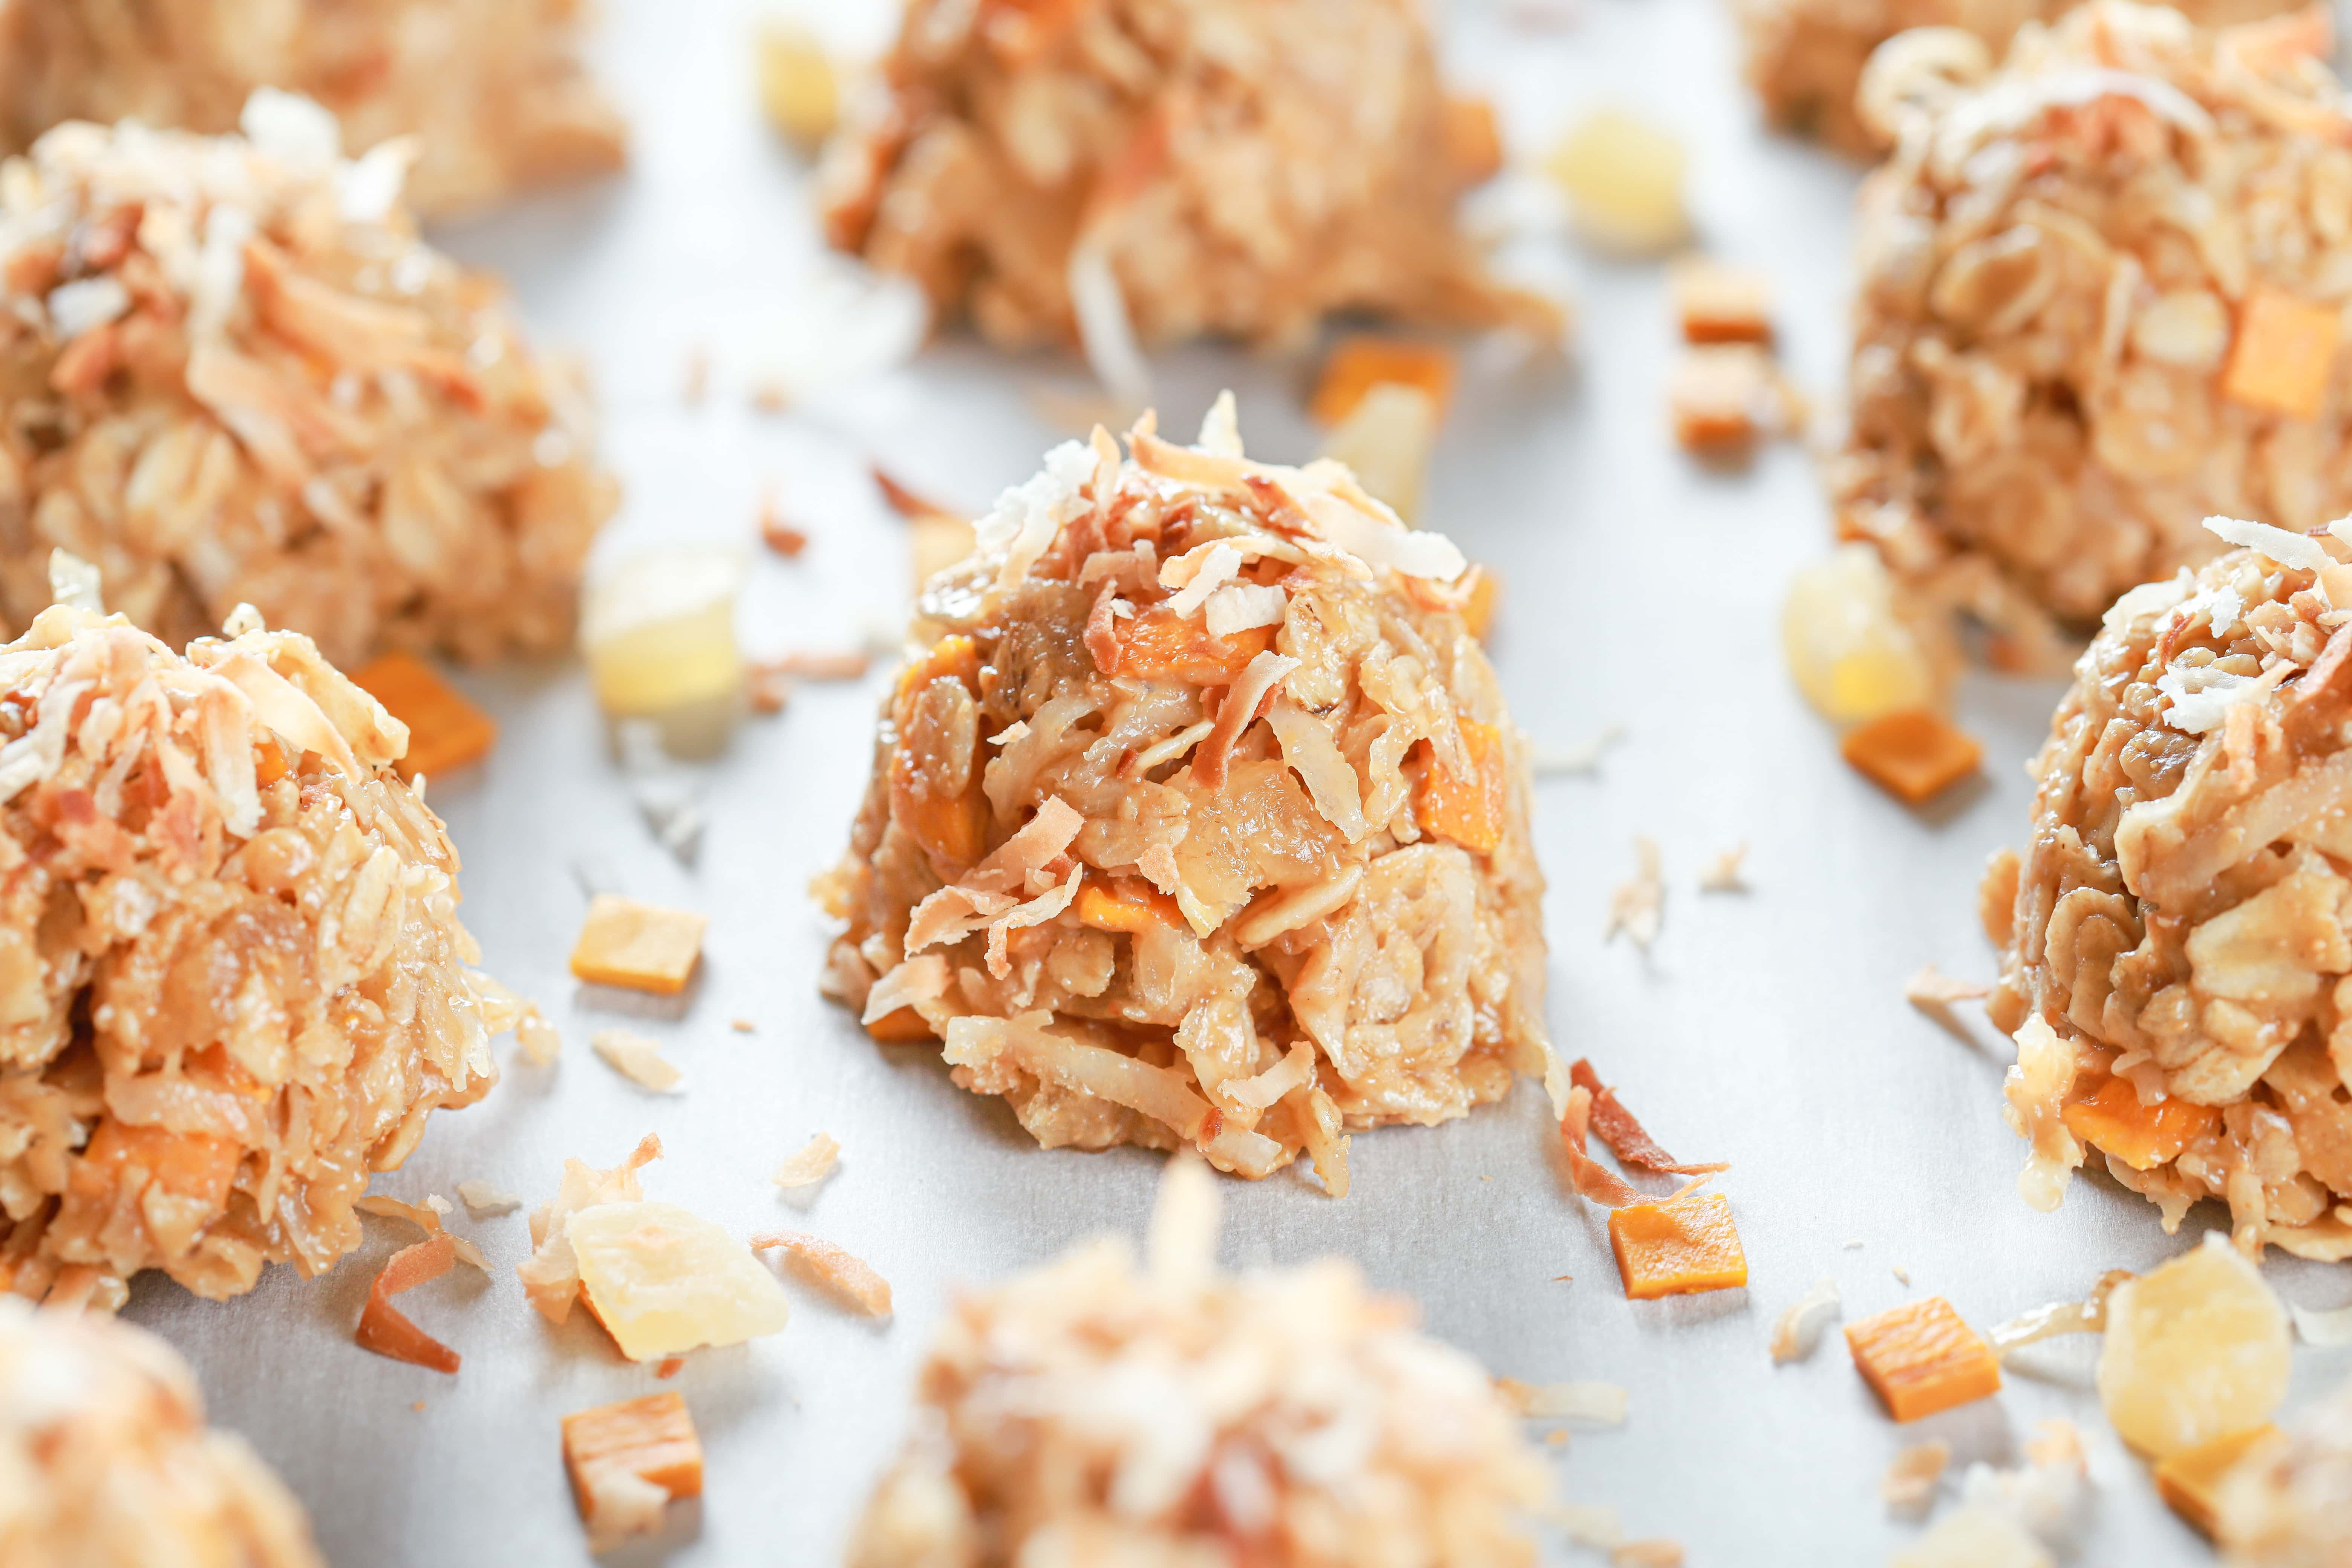 Up close view of a tropical no bake cookie filled with pineapple, mango, and coconut.